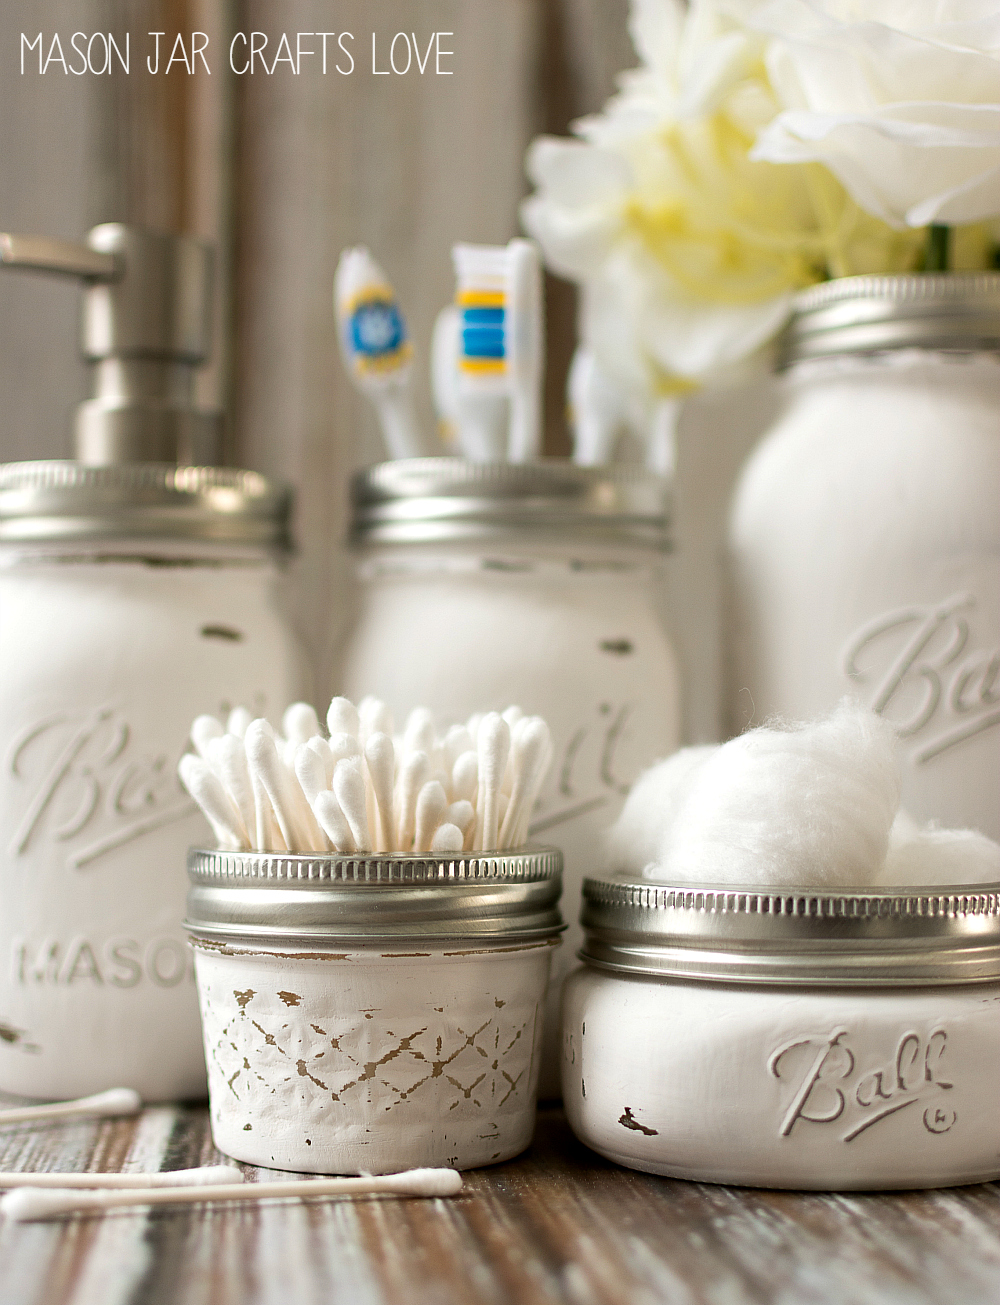 Mason Jar Bathroom Accessories Mason Jar Bathroom Storage Accessories Mason Jar Crafts Love